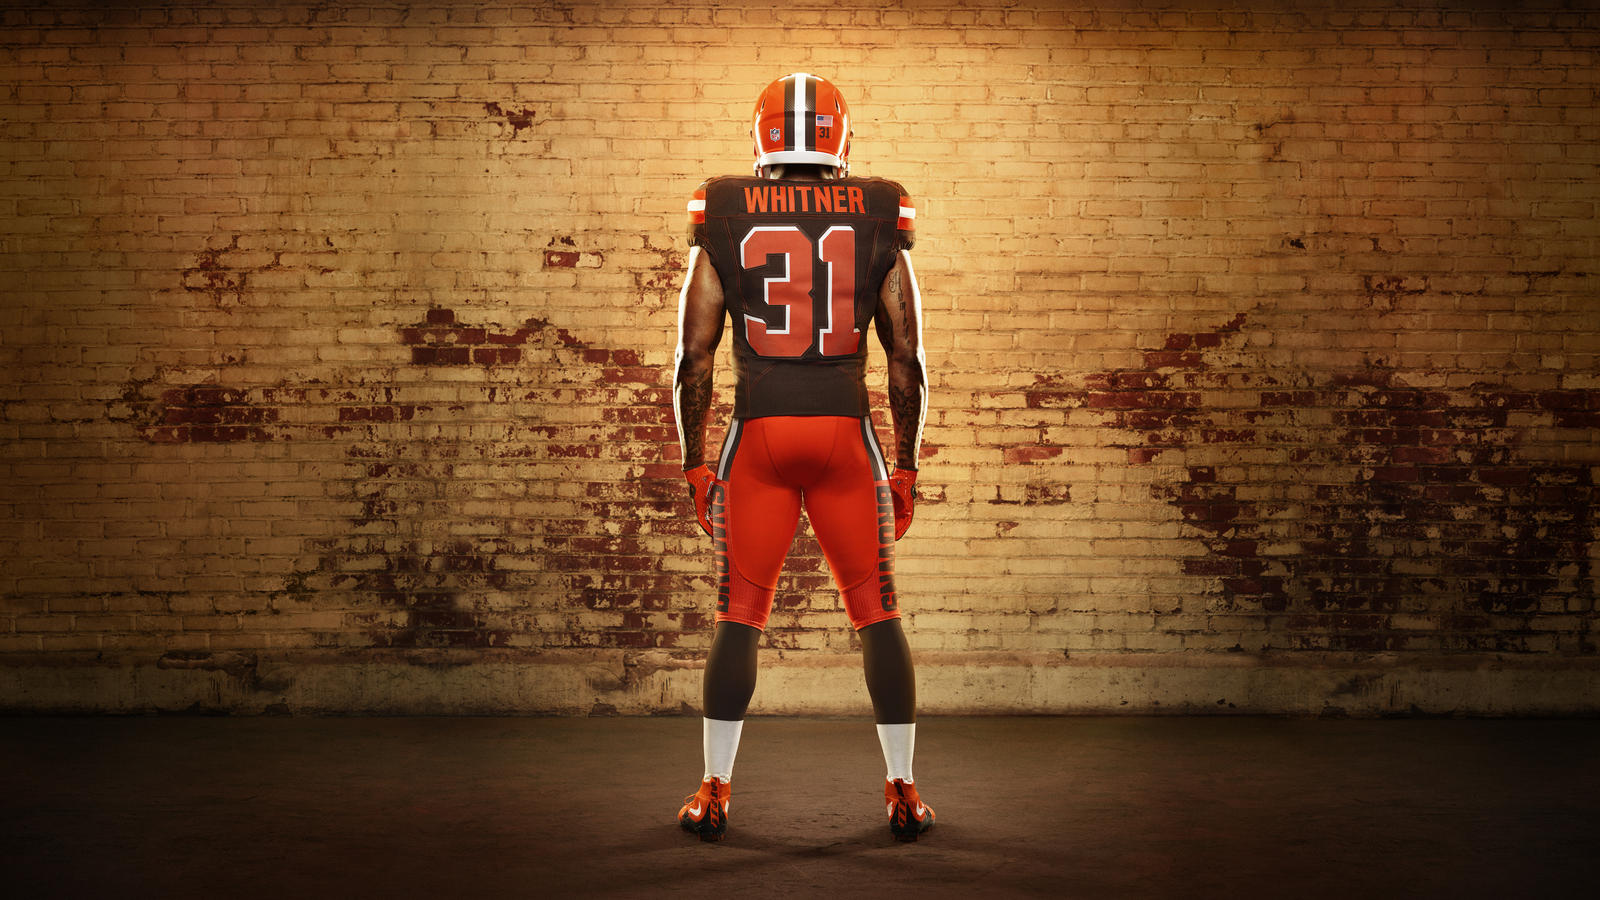 45626_268352_Nike_FB_Cleveland_Donte_Whitner_Soldiers_0079_16X9